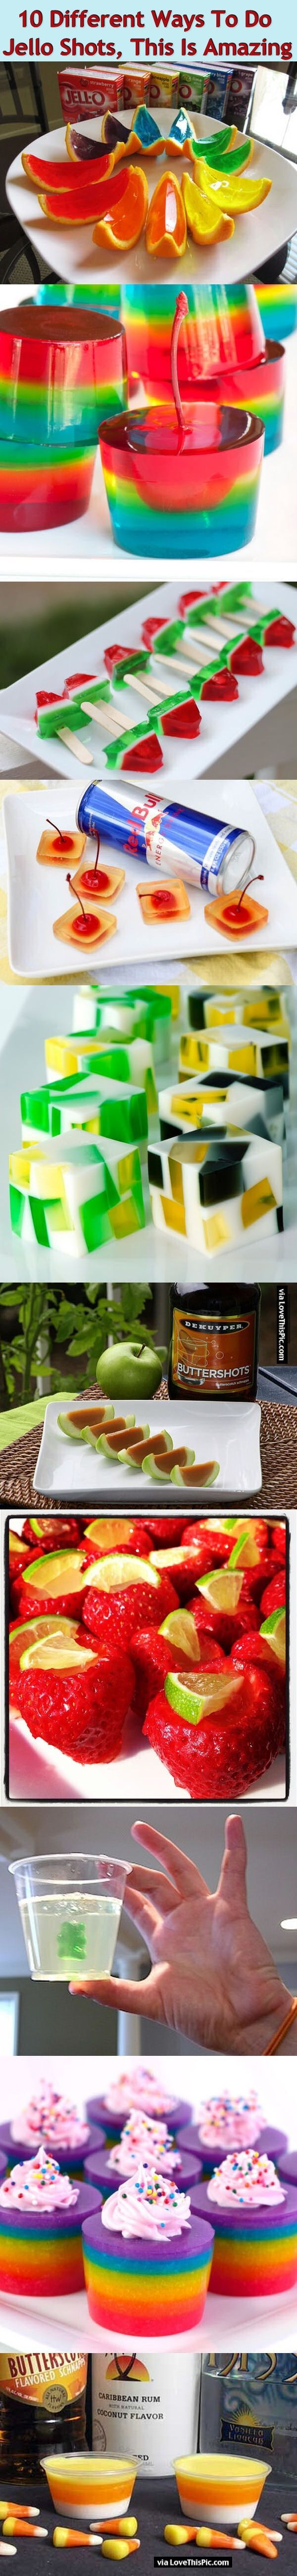 10 Different Ways To Do Jello Shots This Is Amazing party alcohol food jello party ideas party favors jello shots